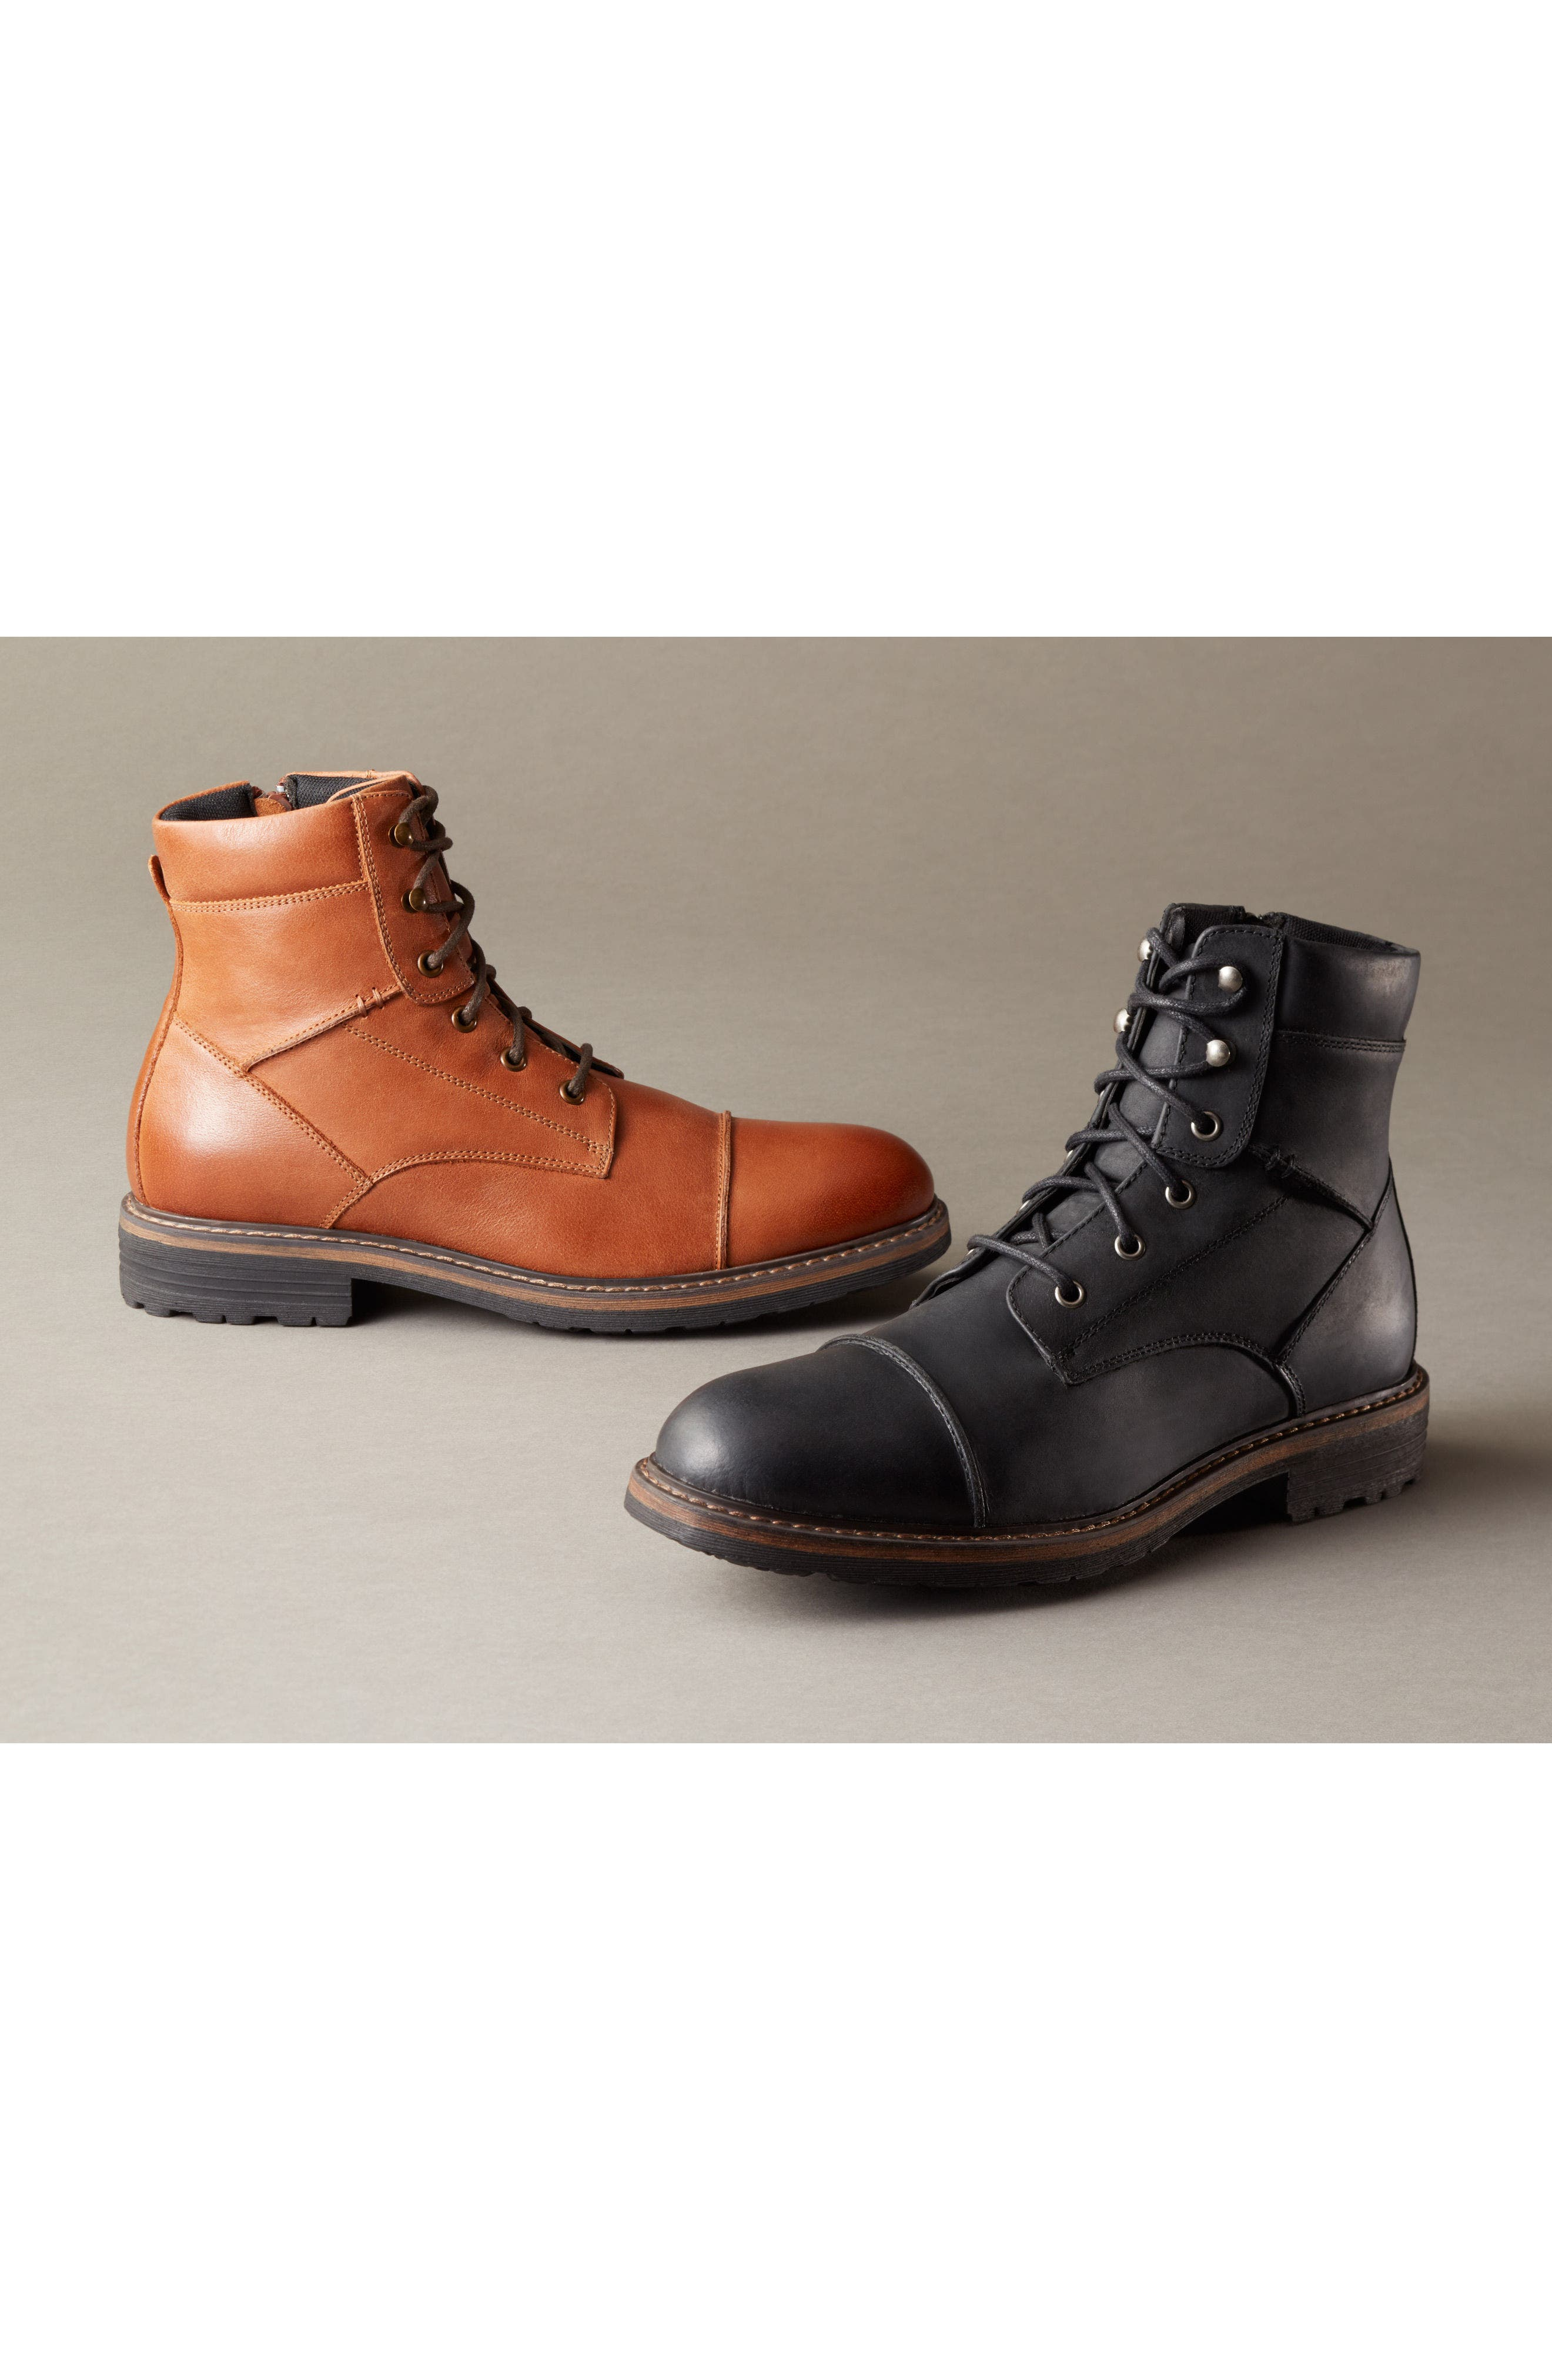 Derek Cap Toe Boot,                             Alternate thumbnail 2, color,